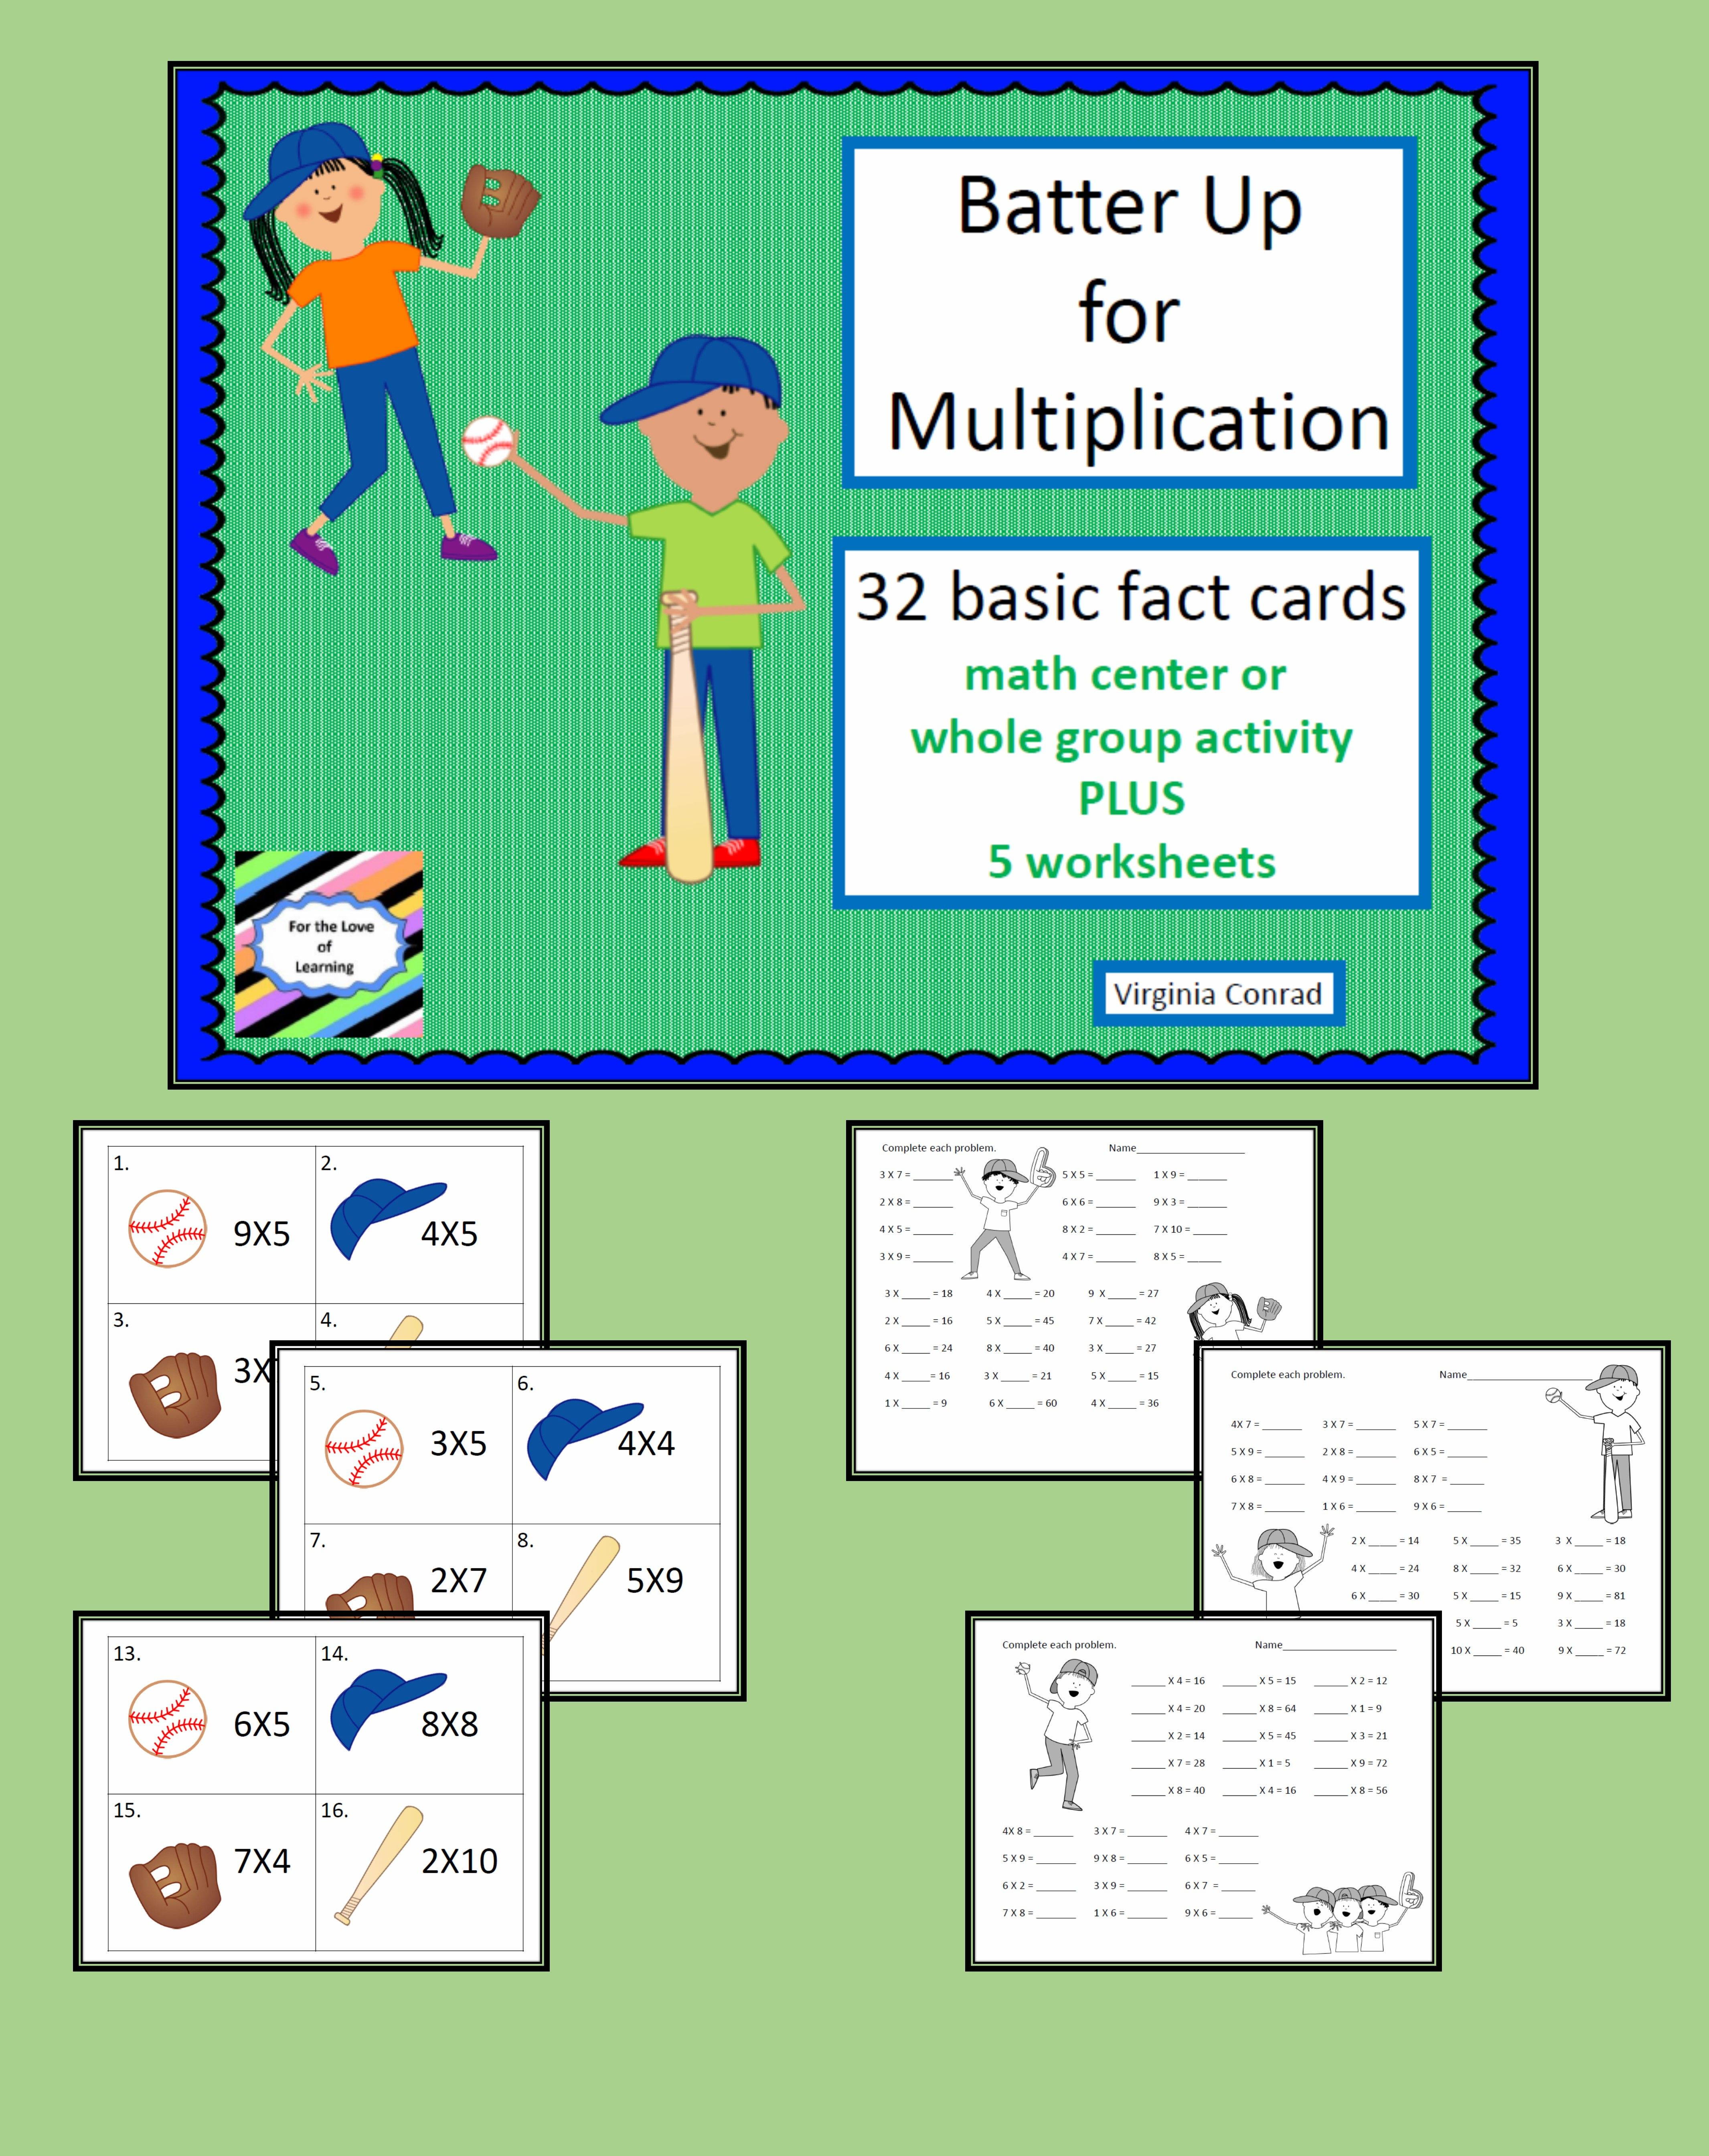 Multiplication Facts Batter Up